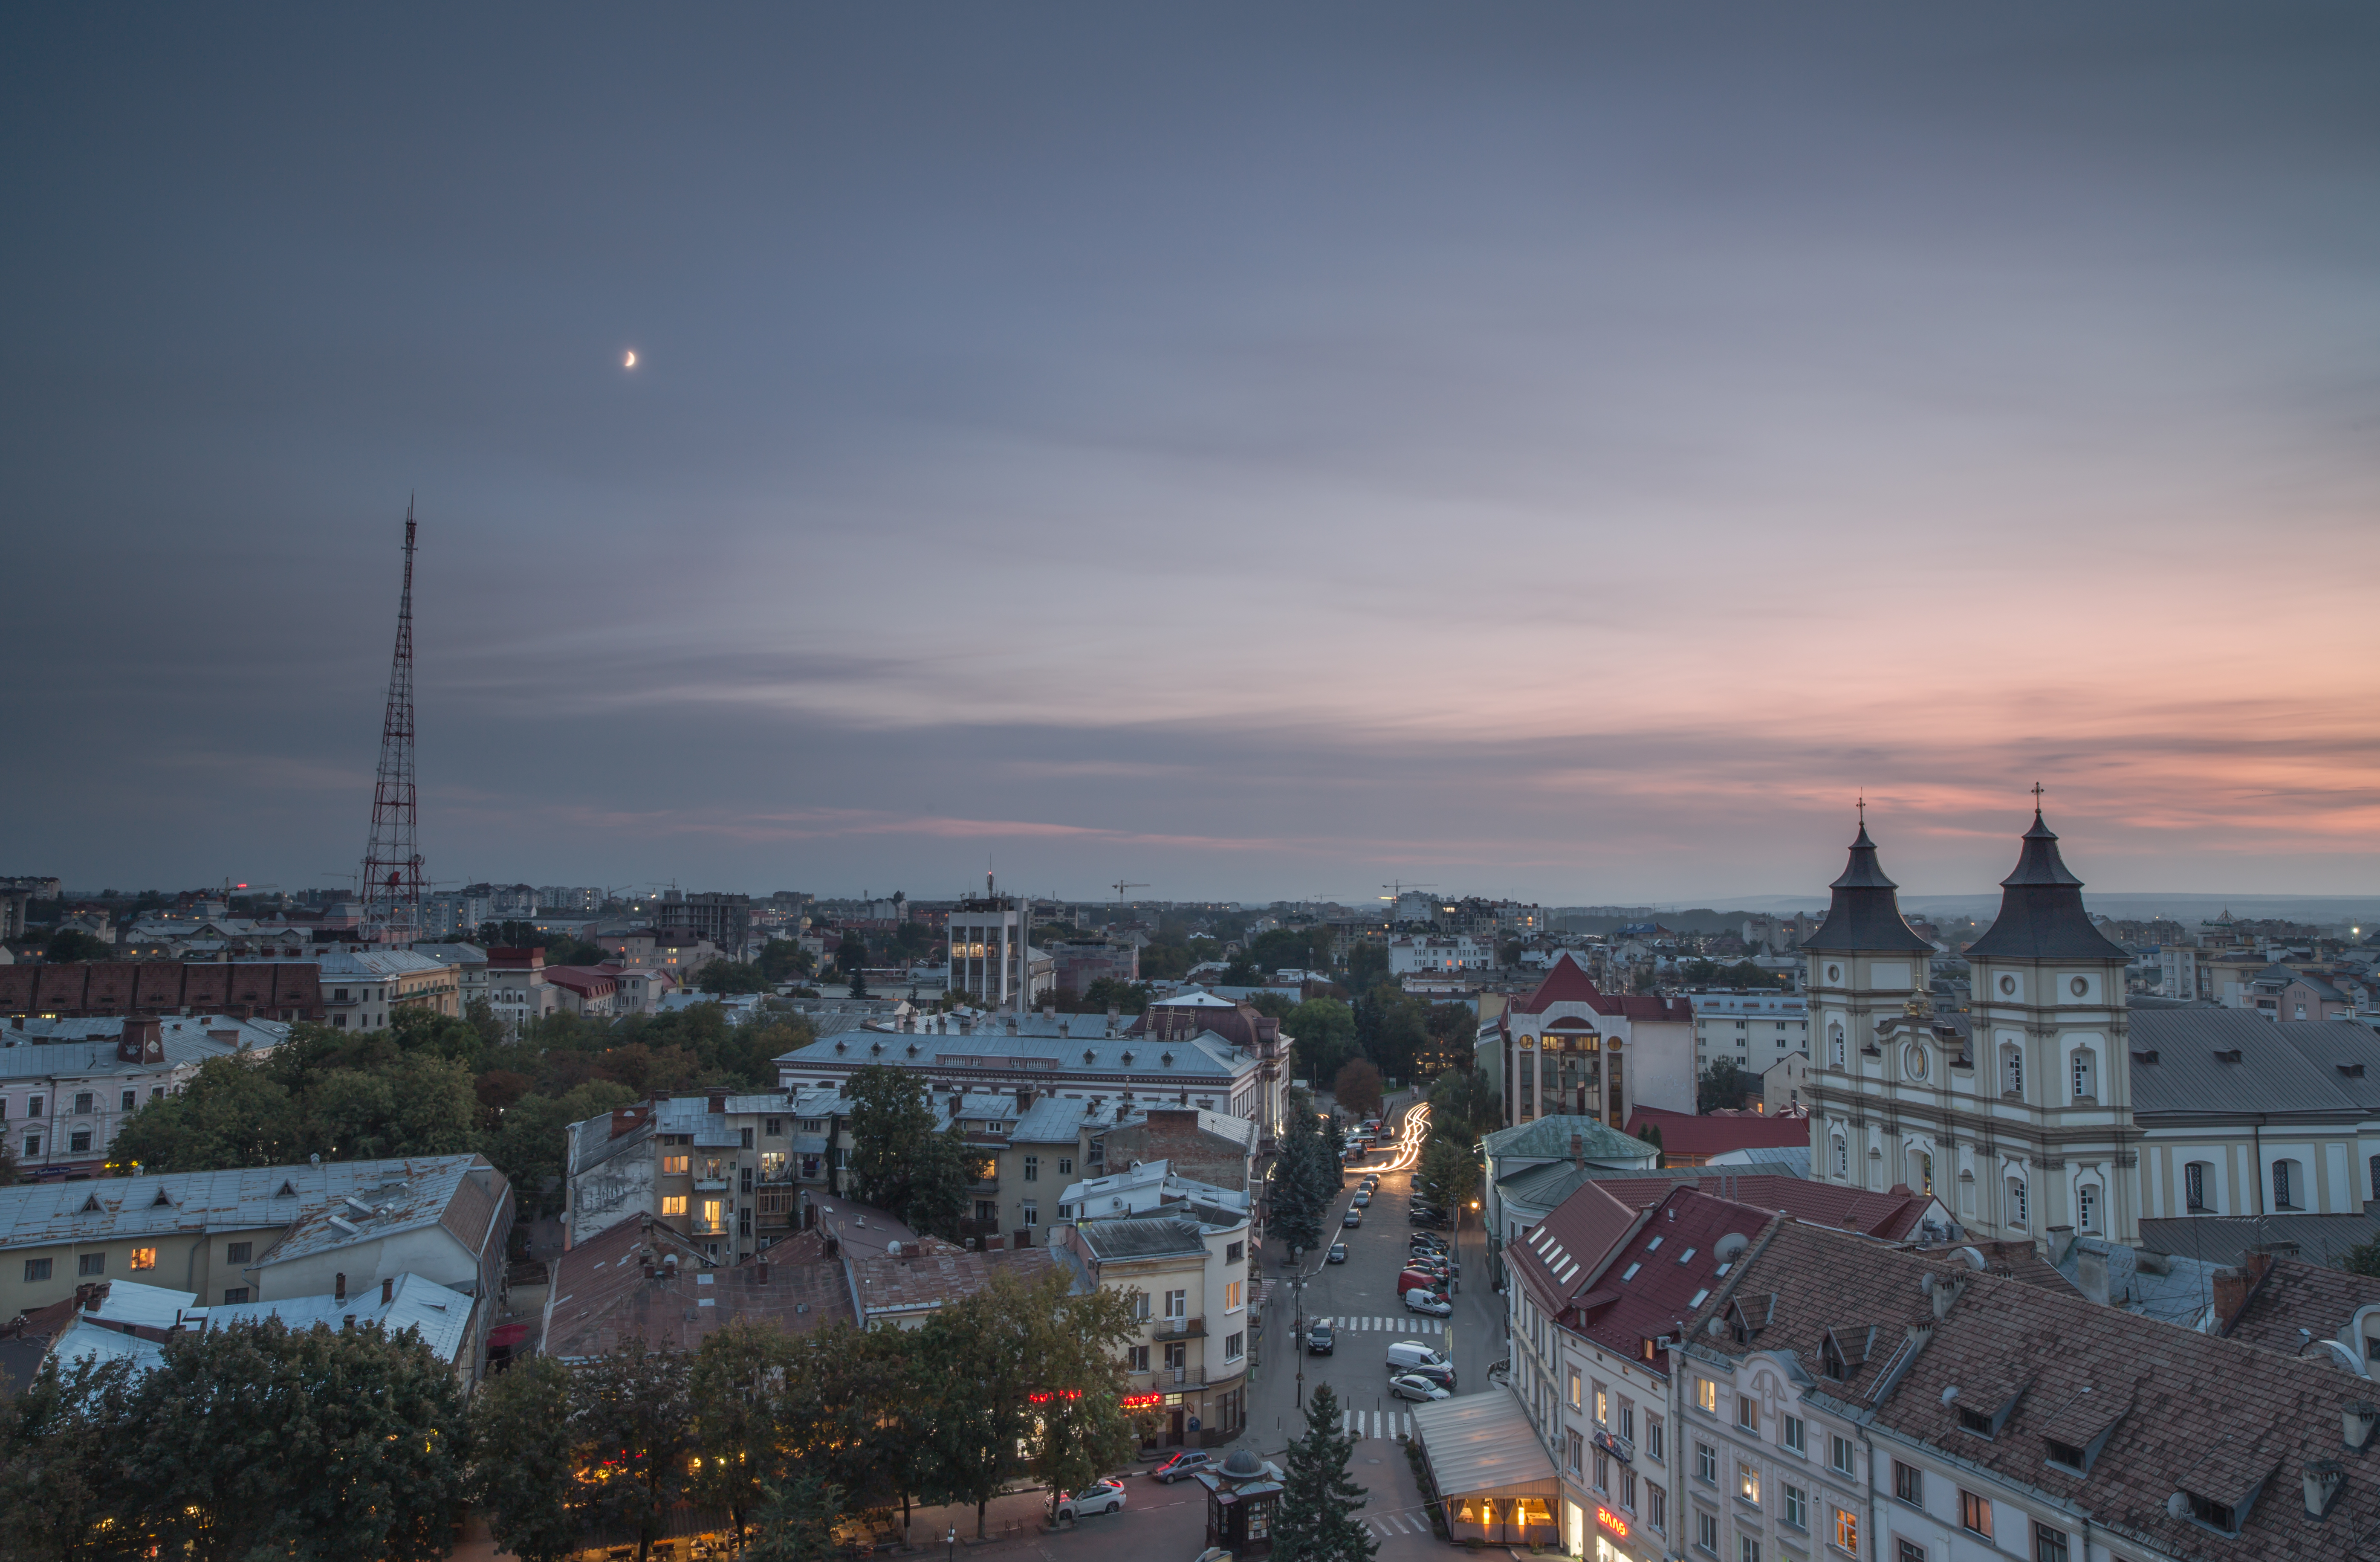 Aerial view of old European city during sunset example image 1